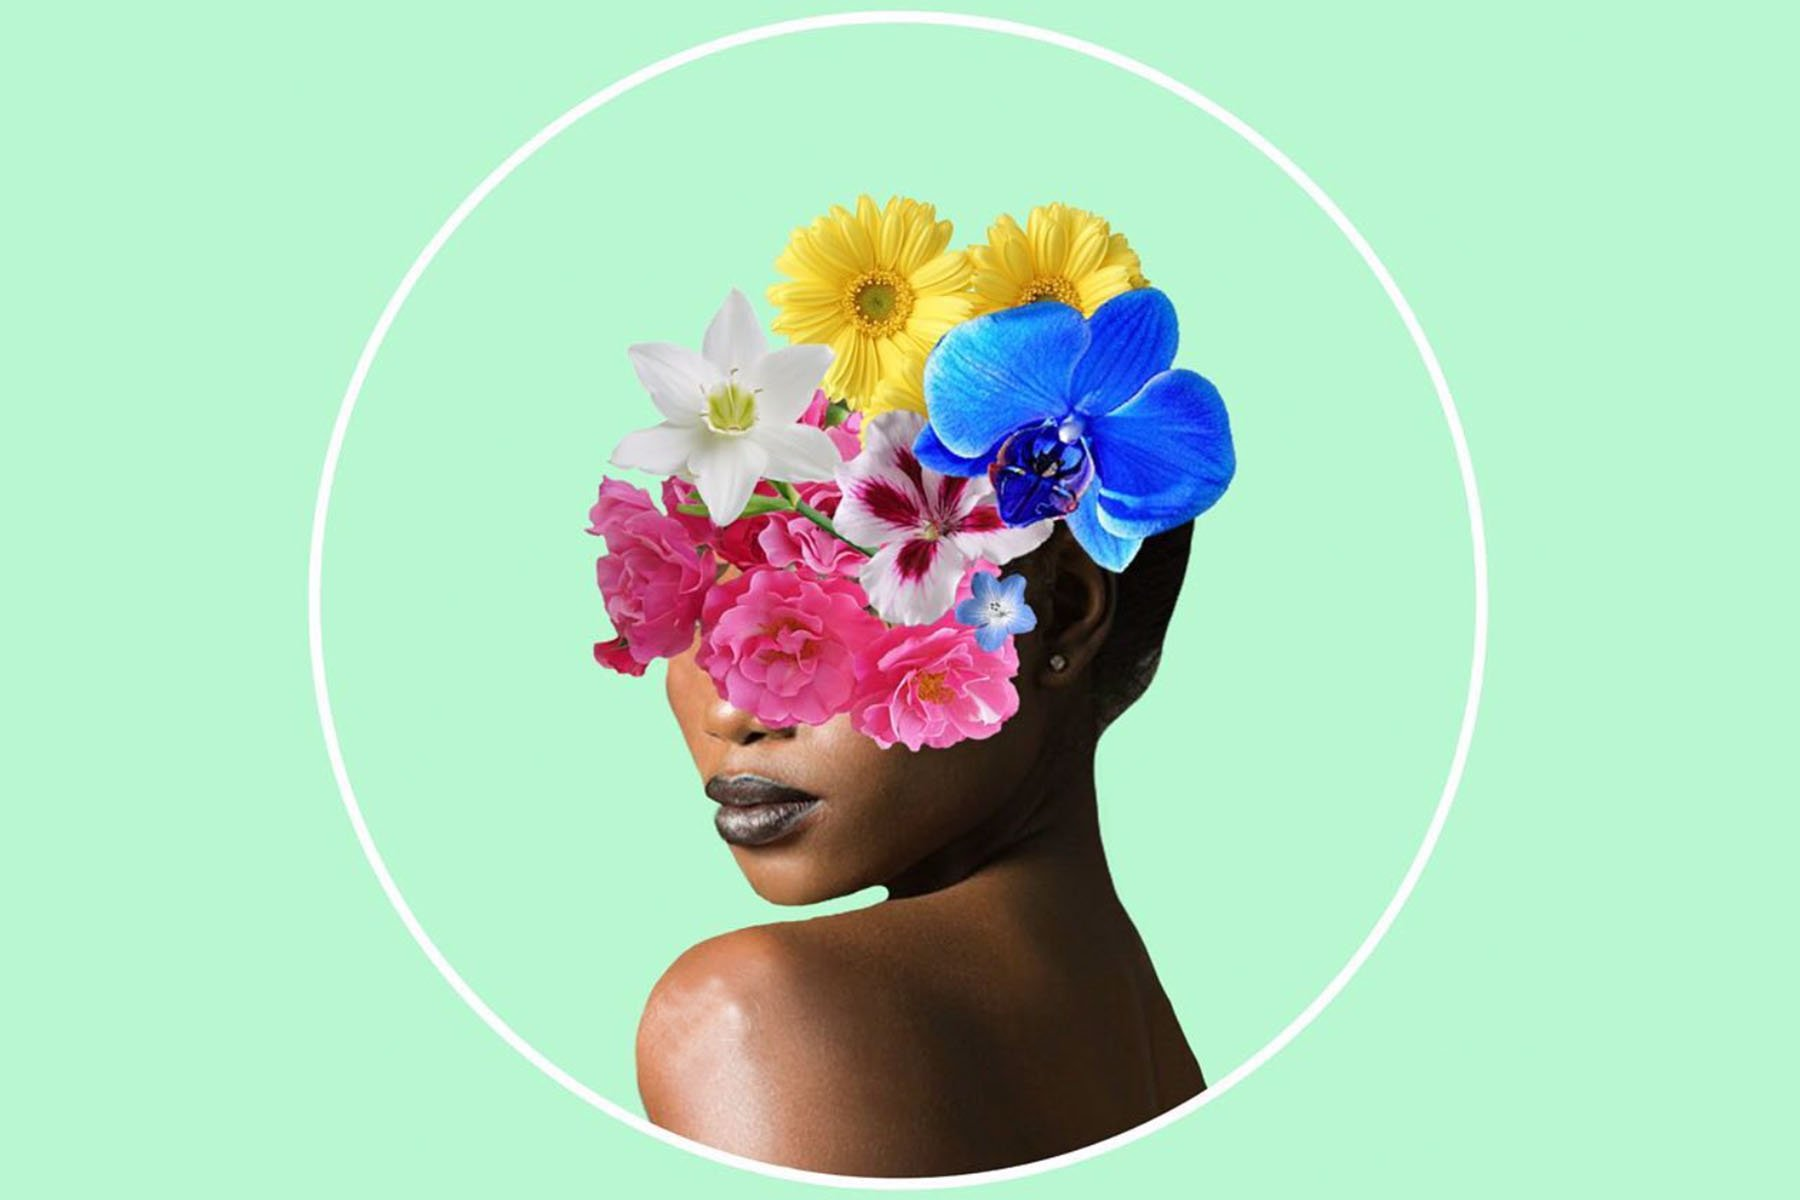 Your Weekly Horoscope: Libra Vibes and a Rejuvenating New Moon